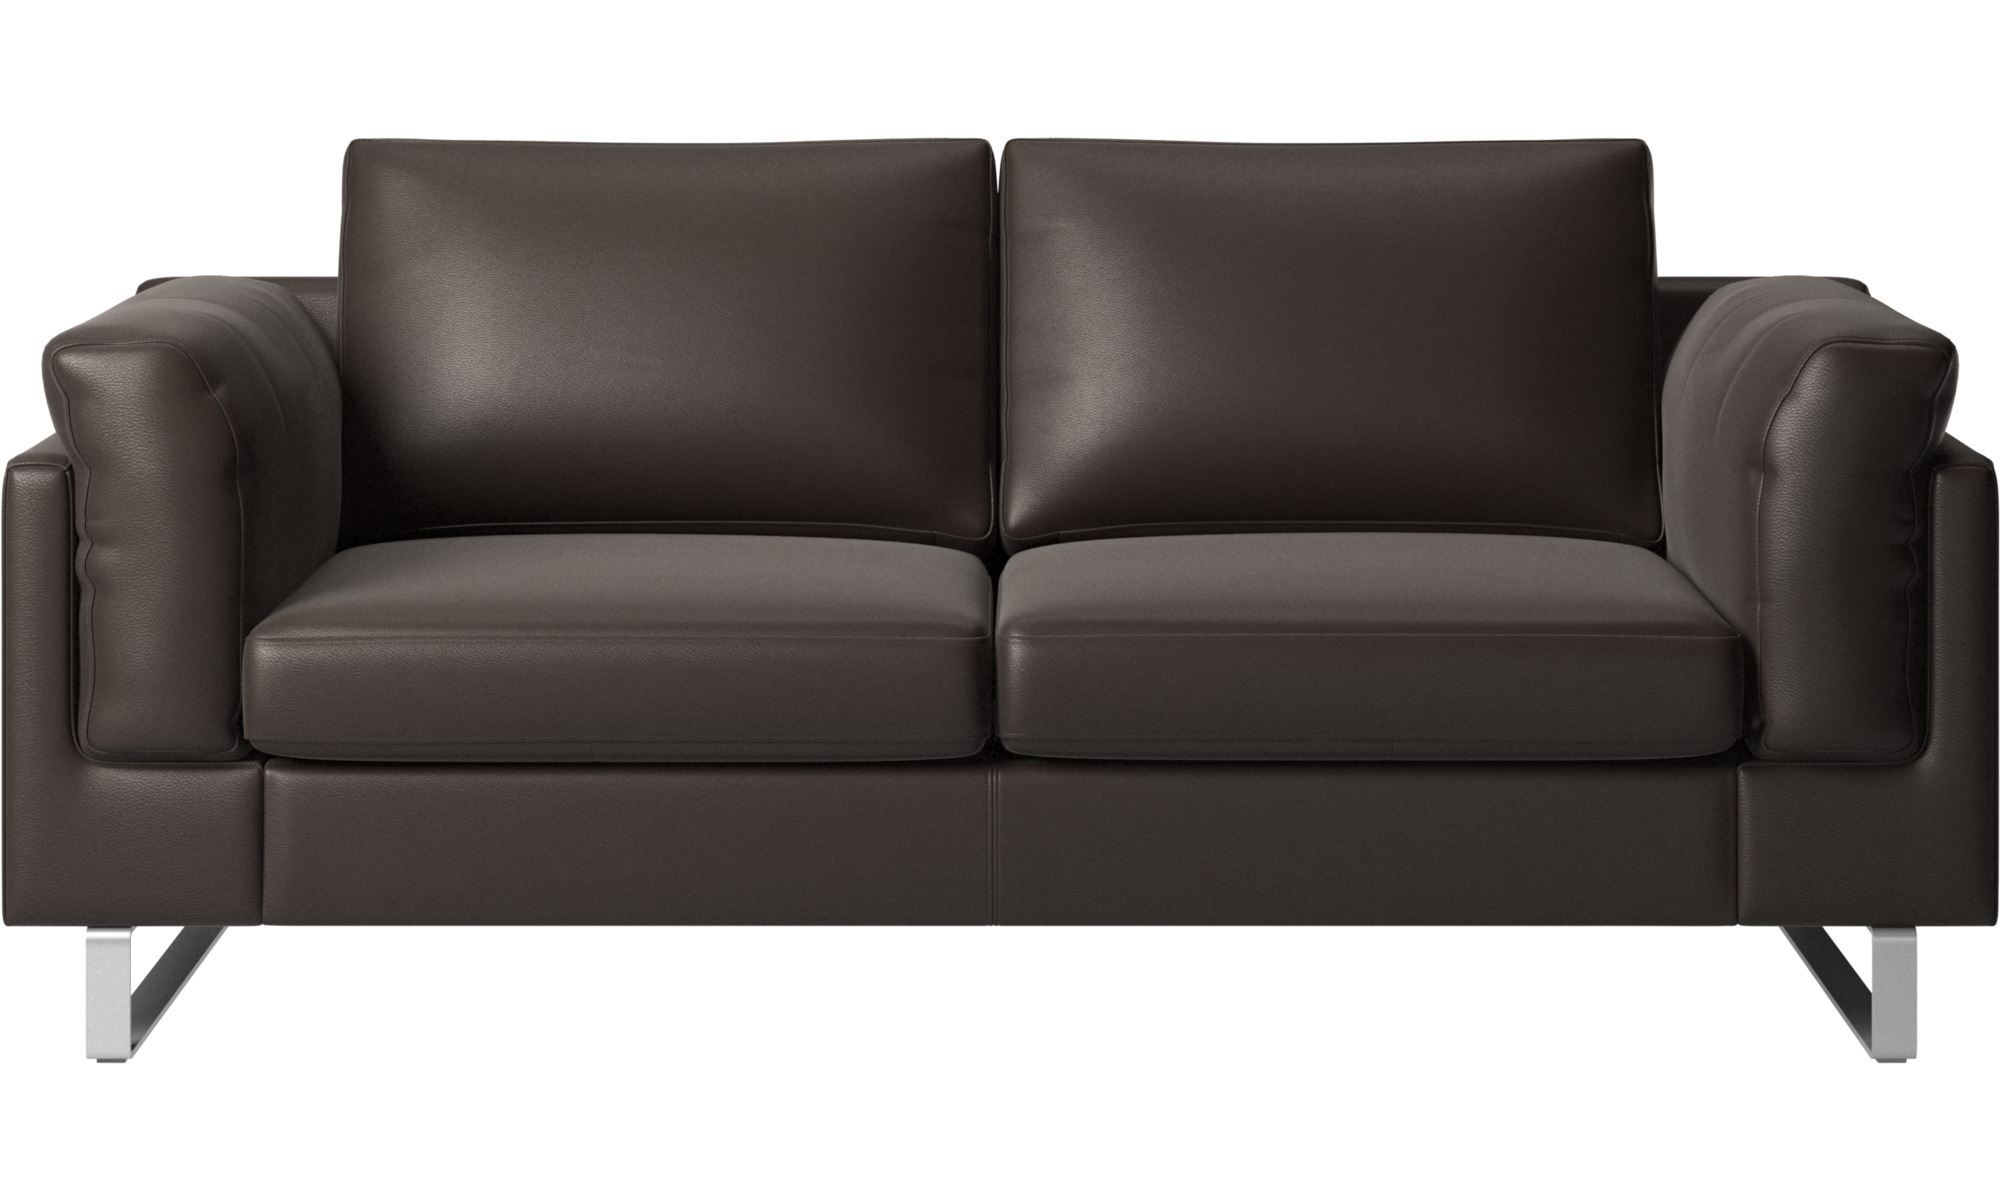 2 sitzer sofas indivi 2 sofa boconcept. Black Bedroom Furniture Sets. Home Design Ideas